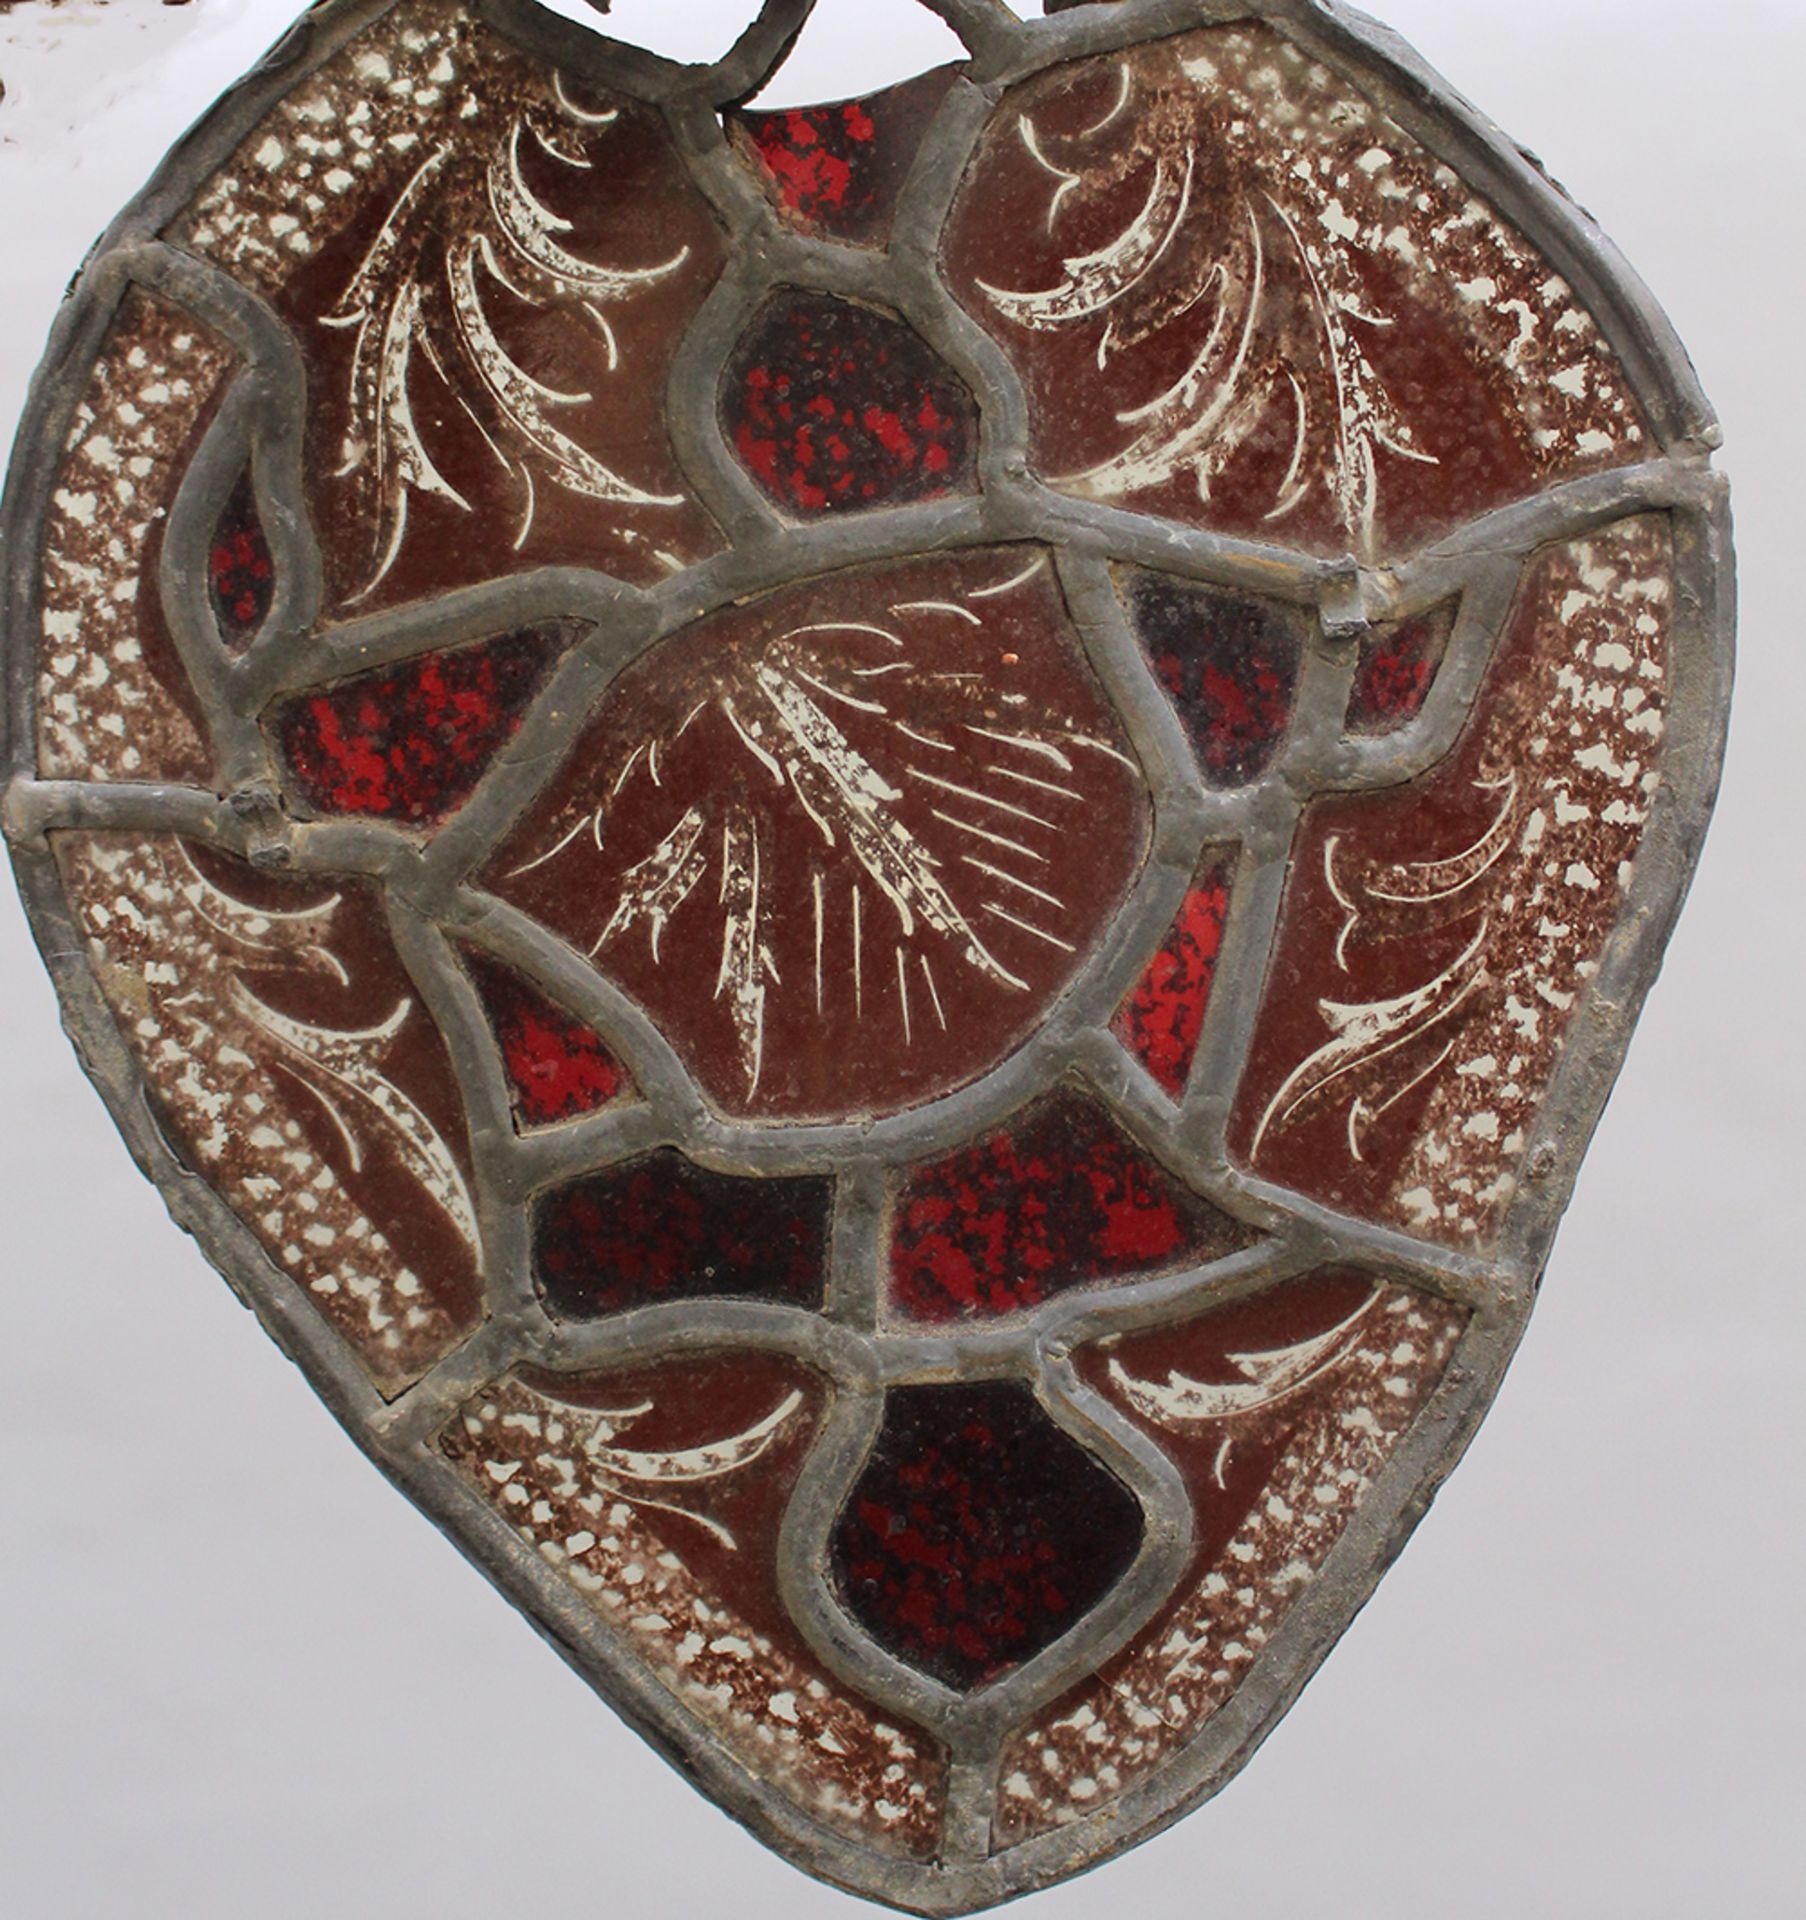 Glass window in medieval manner, red and black coloured leaves, in pewter frame,parts missing. - Image 2 of 3